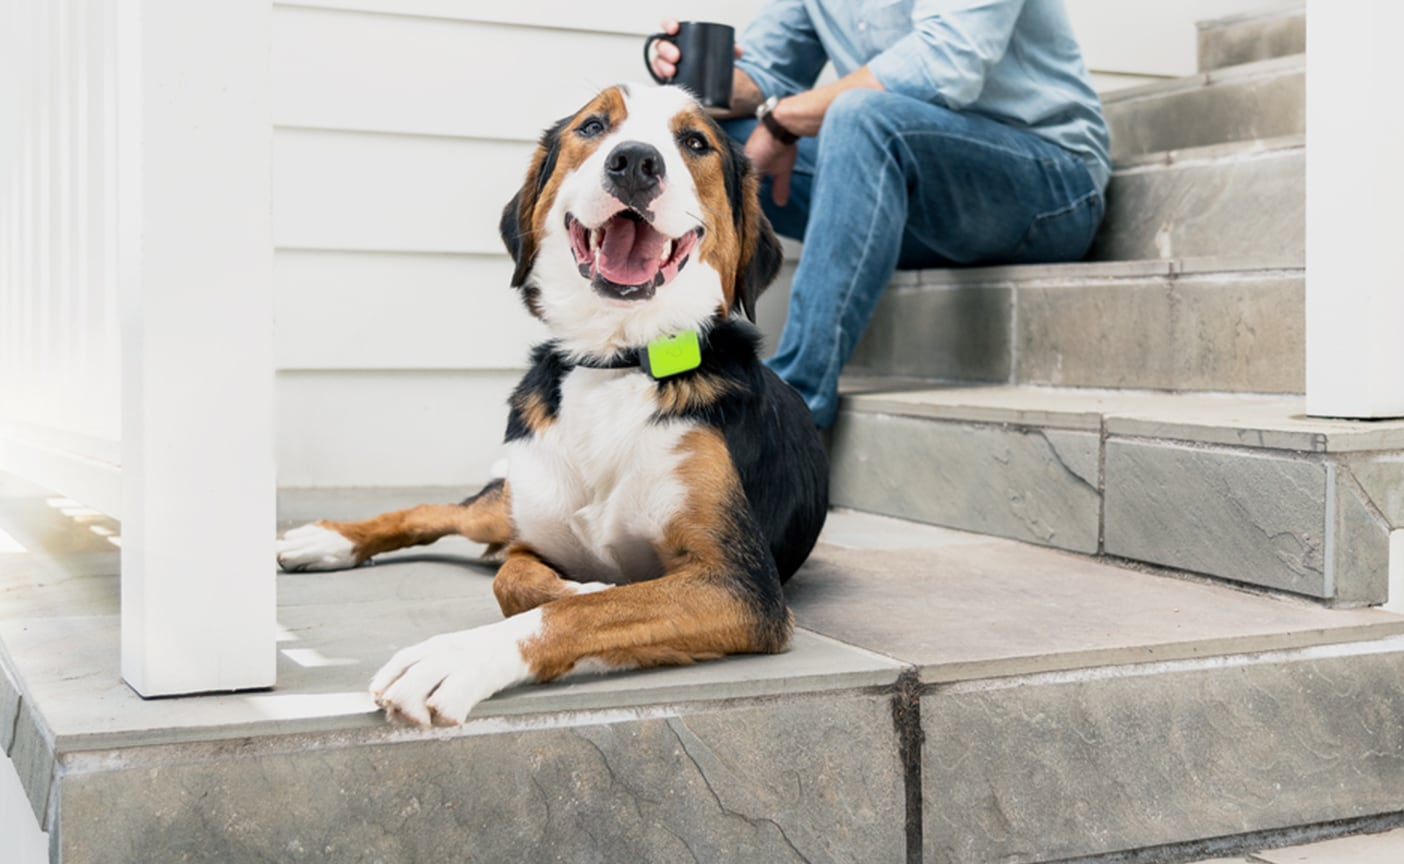 Whistle Go Explore Pet Location Tracker keeps an eye on your pet's health and well-being